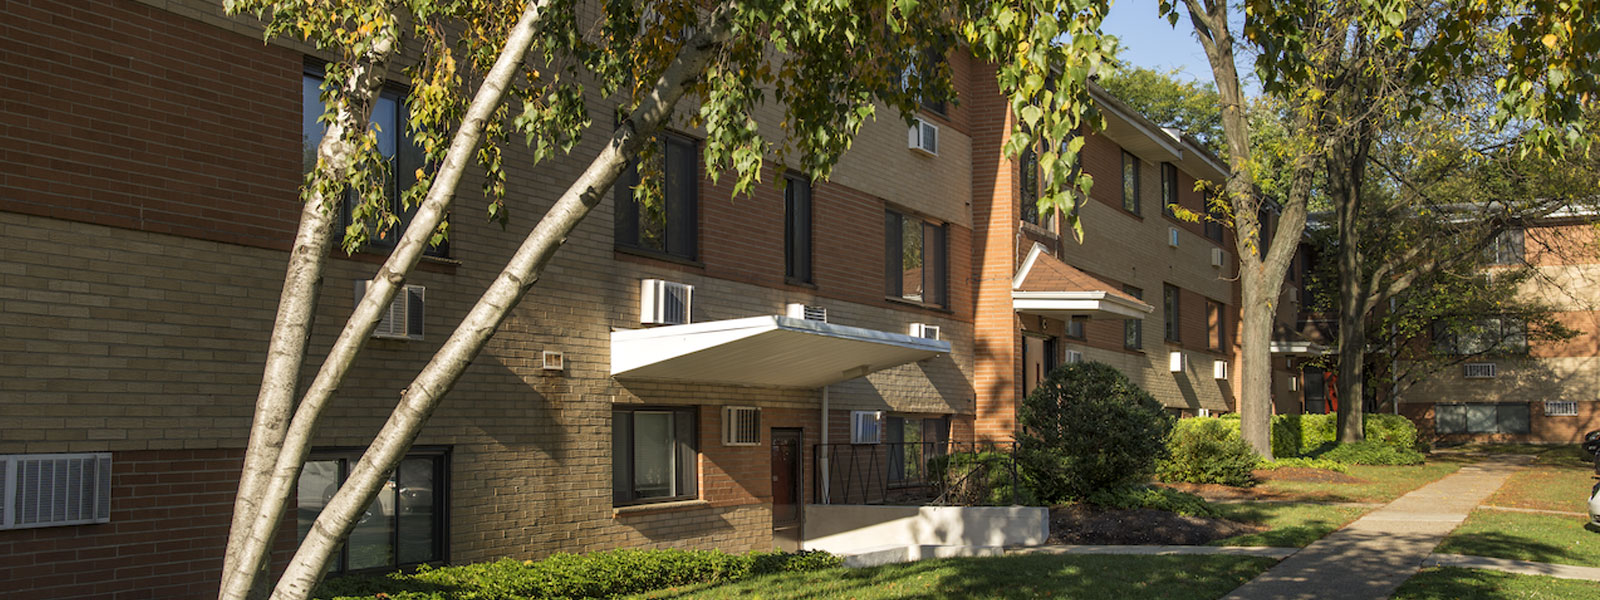 Stenton Plaza Apartments | Mt. Airy Apartments for Rent